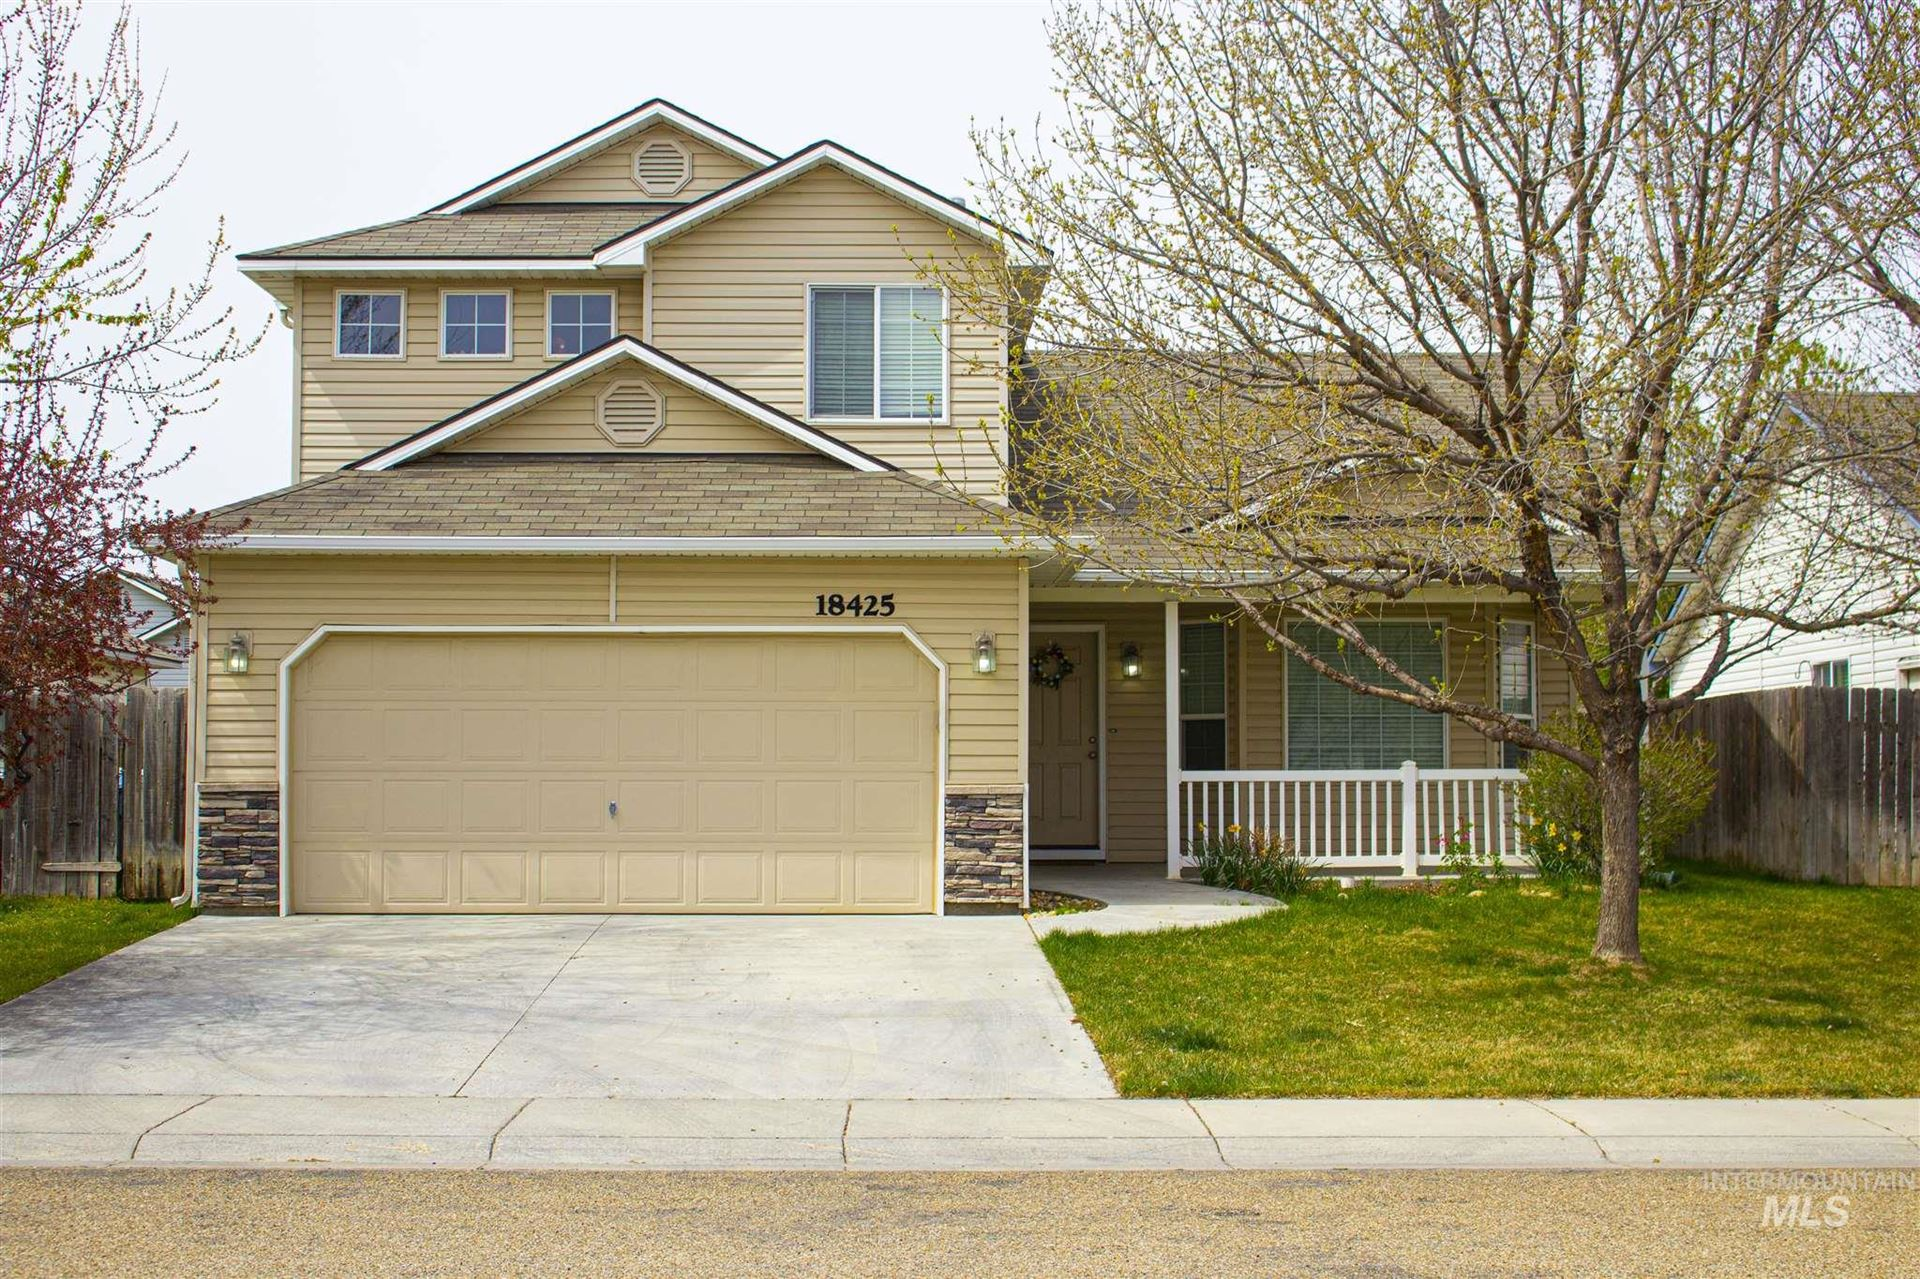 Photo of 18425 Viceroy Place, Nampa, ID 83687 (MLS # 98799684)